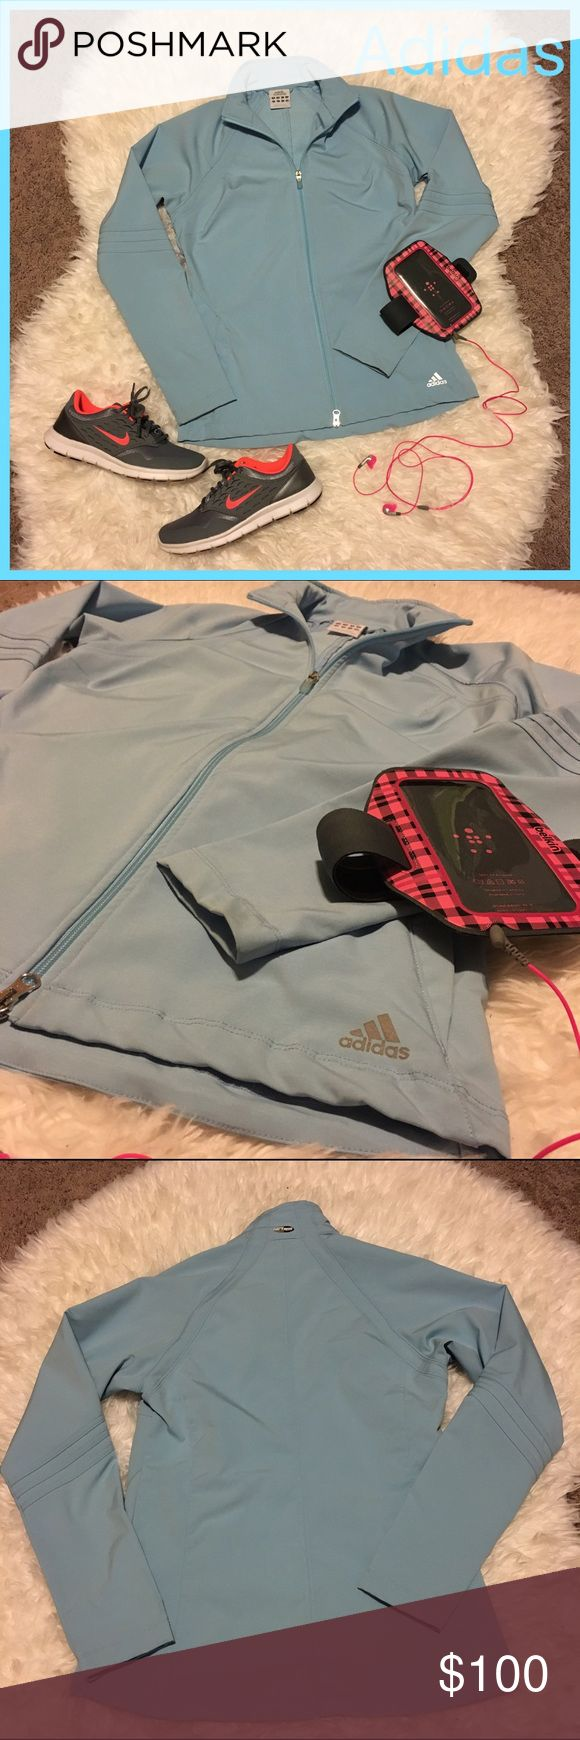 Adidas Women's Blue Climaproof Zip Up Jacket M Like New! Worn Once! name brand: Adidas. size: Medium. color: Light Blue. details: Zip-Up. Two front pockets. This jacket is super cute! Adidas Jackets & Coats